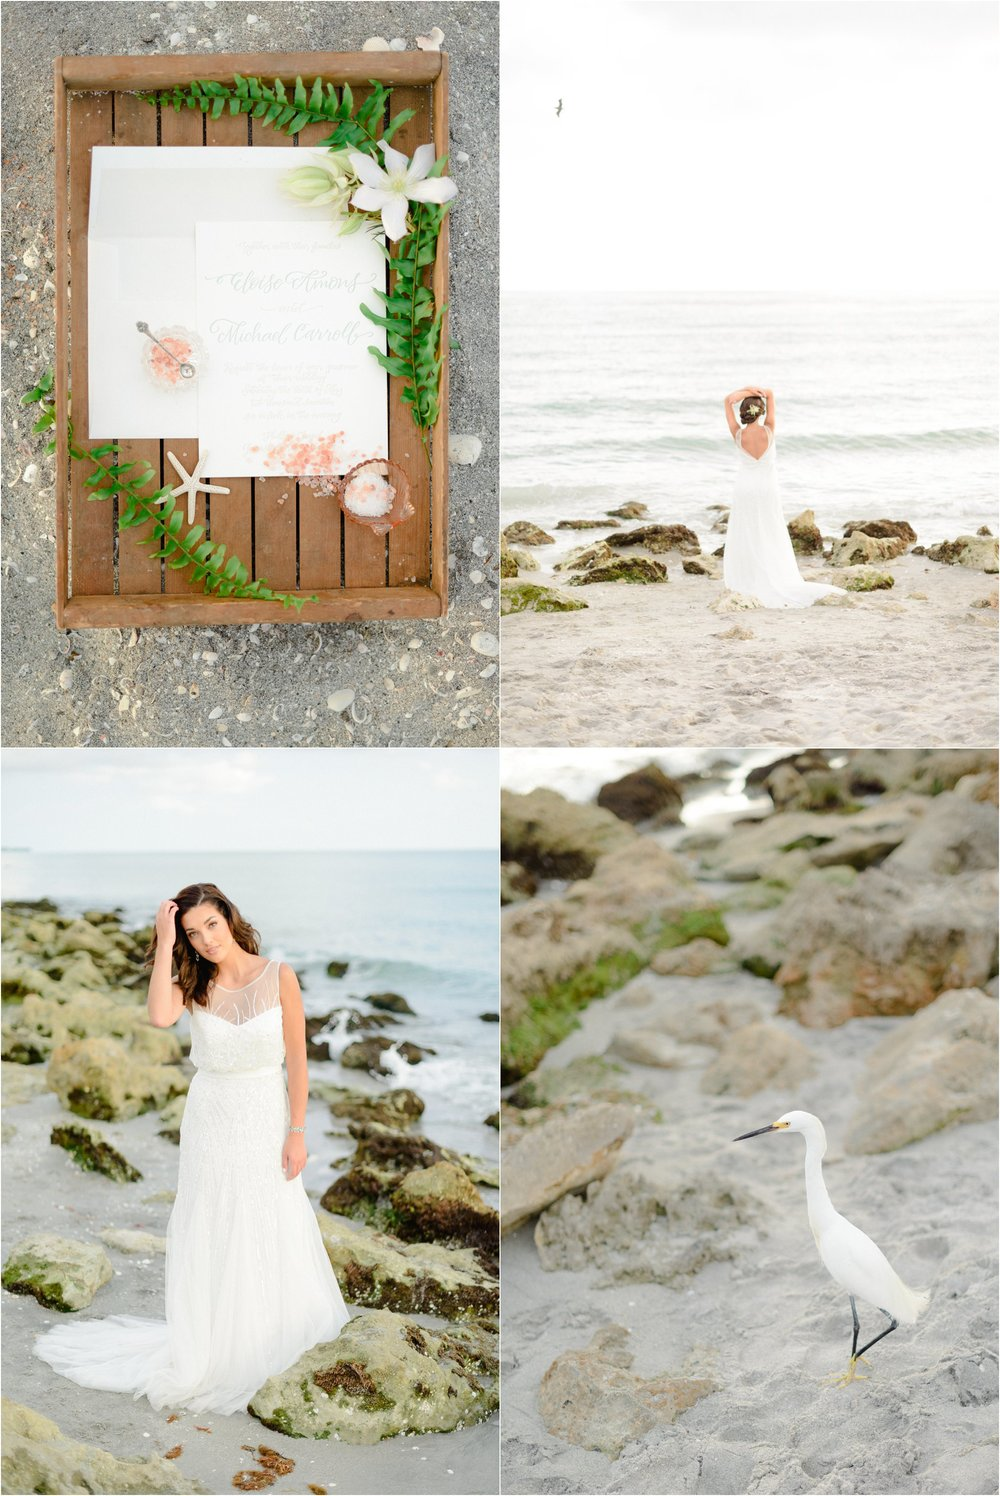 Occasions Beach Bridal_Rustic White004.jpg